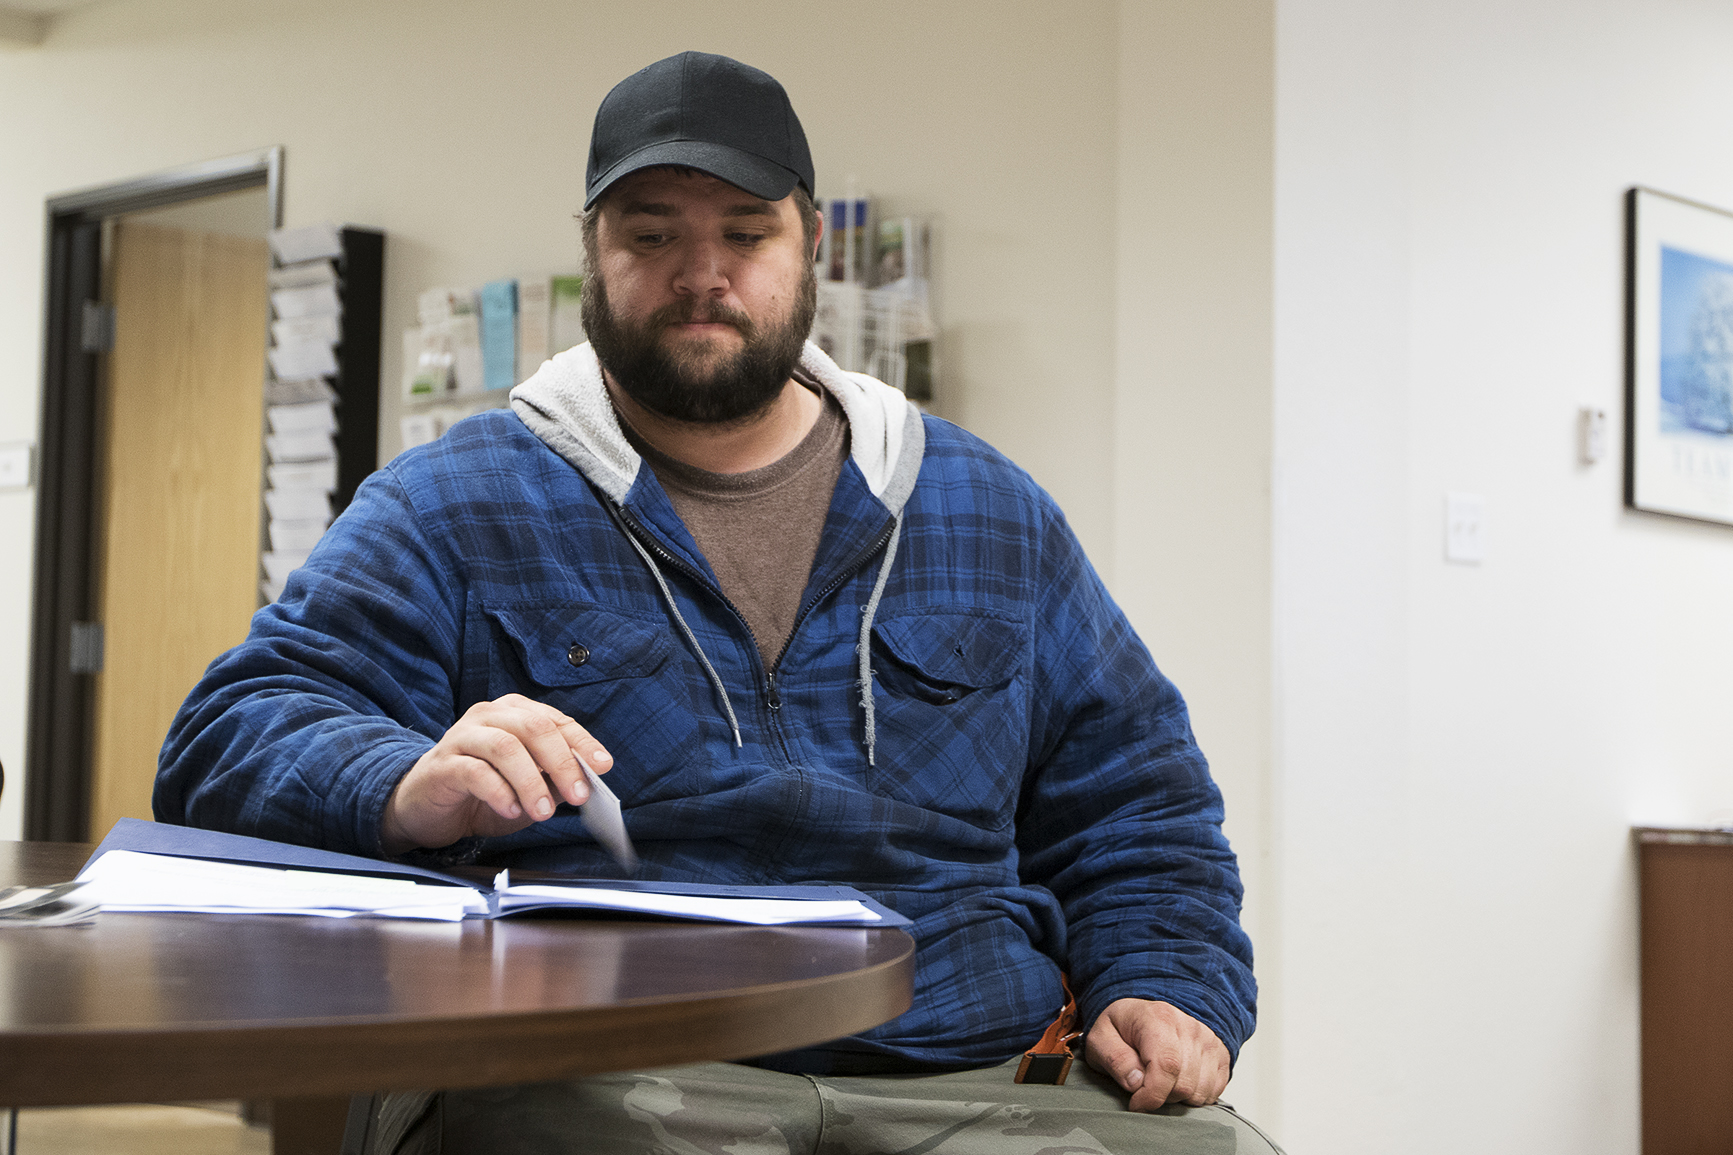 Kuillin Orcutt waits for a friend in the Wyoming Department of Workforce Services office Friday April 1, 2016 after getting started looking for work. Orcutt, who comes from a family of mine workers, was laid off Thursday from the North Antelope Rochelle mine along with more than 230 of his coworkers.